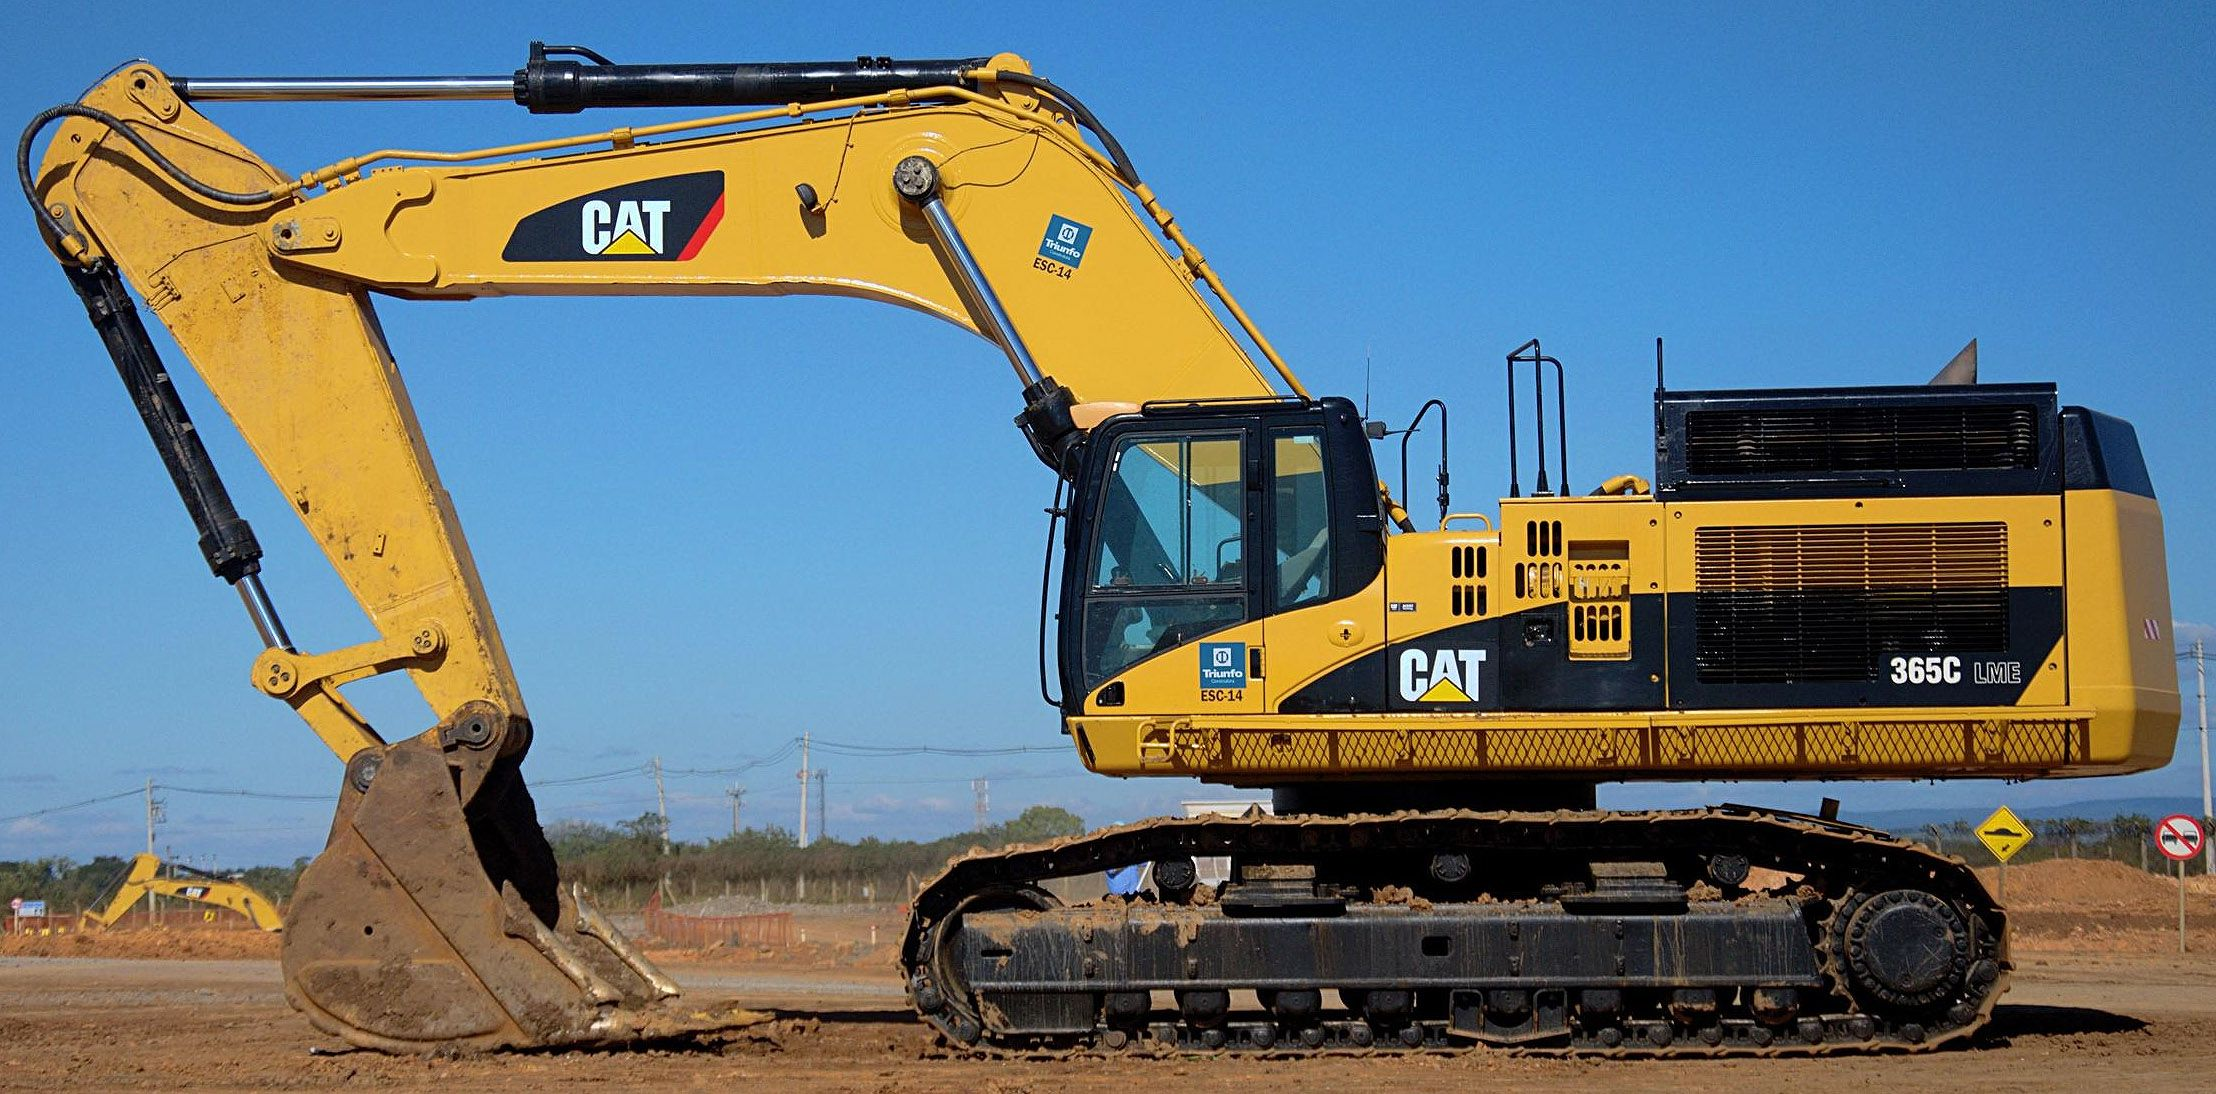 CAT 365C Large Excavator Caterpillar excavators